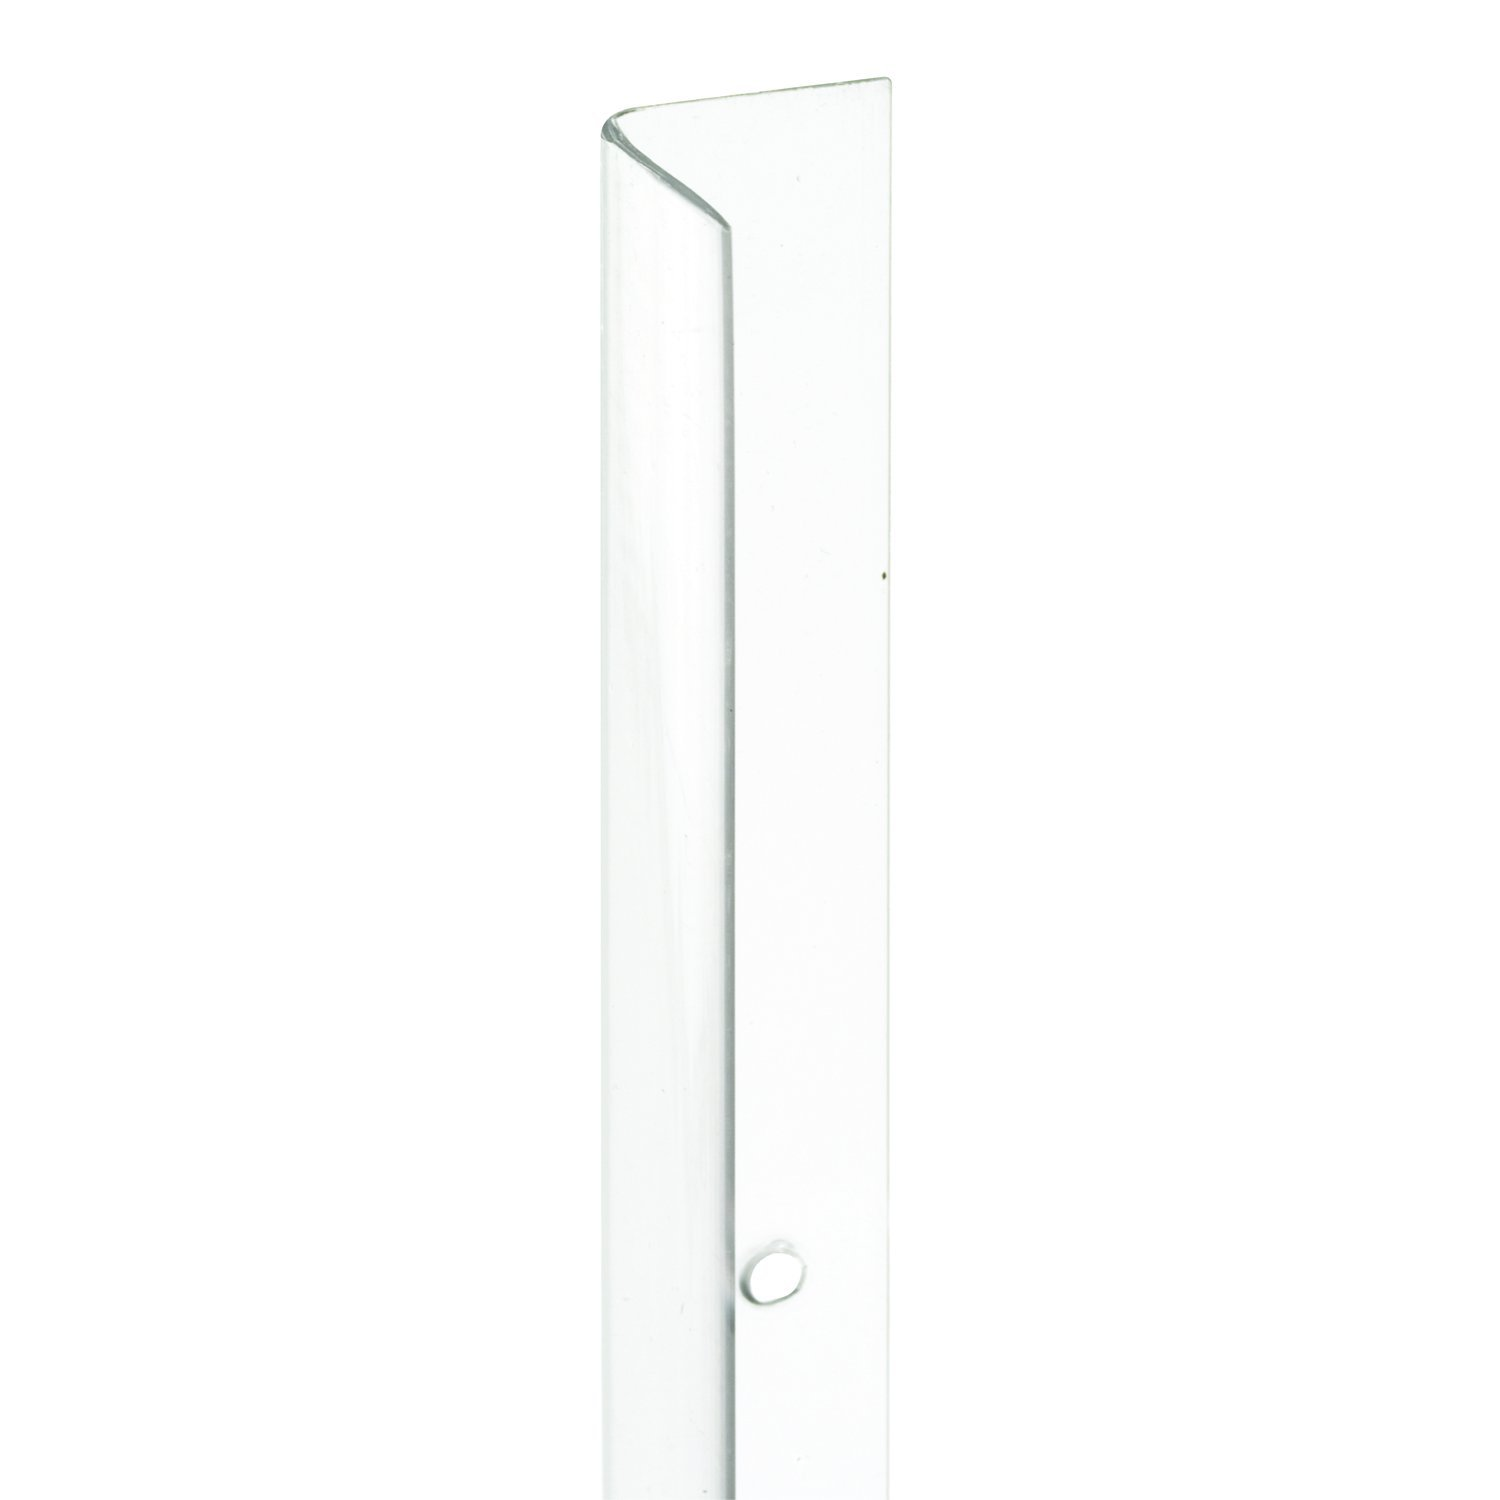 Prime-Line Products U 9129-4 Corner Shield, 3/4 In. x 48 In, Vinyl, Clear, Pack of 4